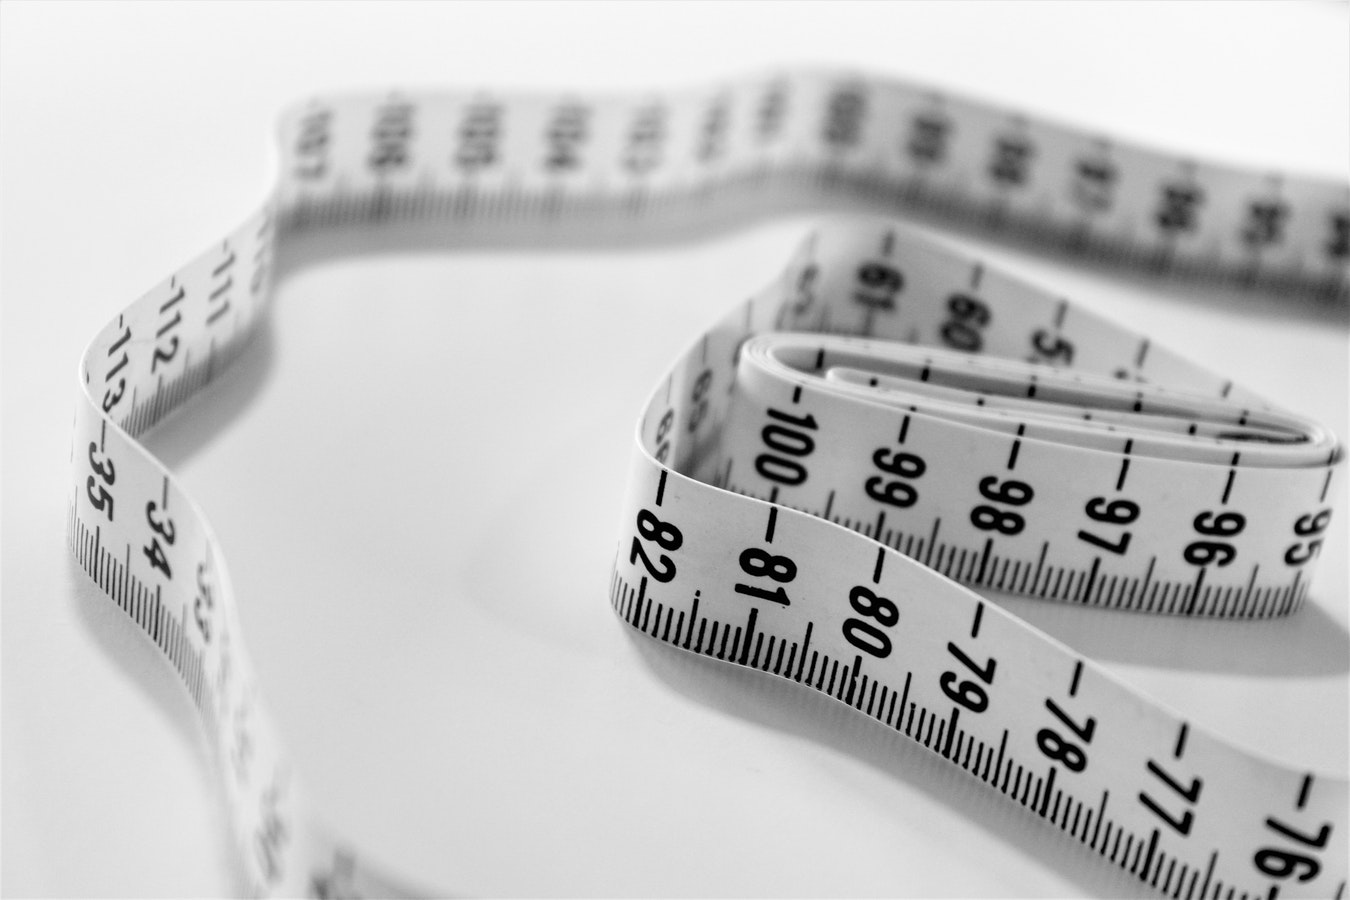 Measuring tape. Obesity is one of the 10 common senior health issues.